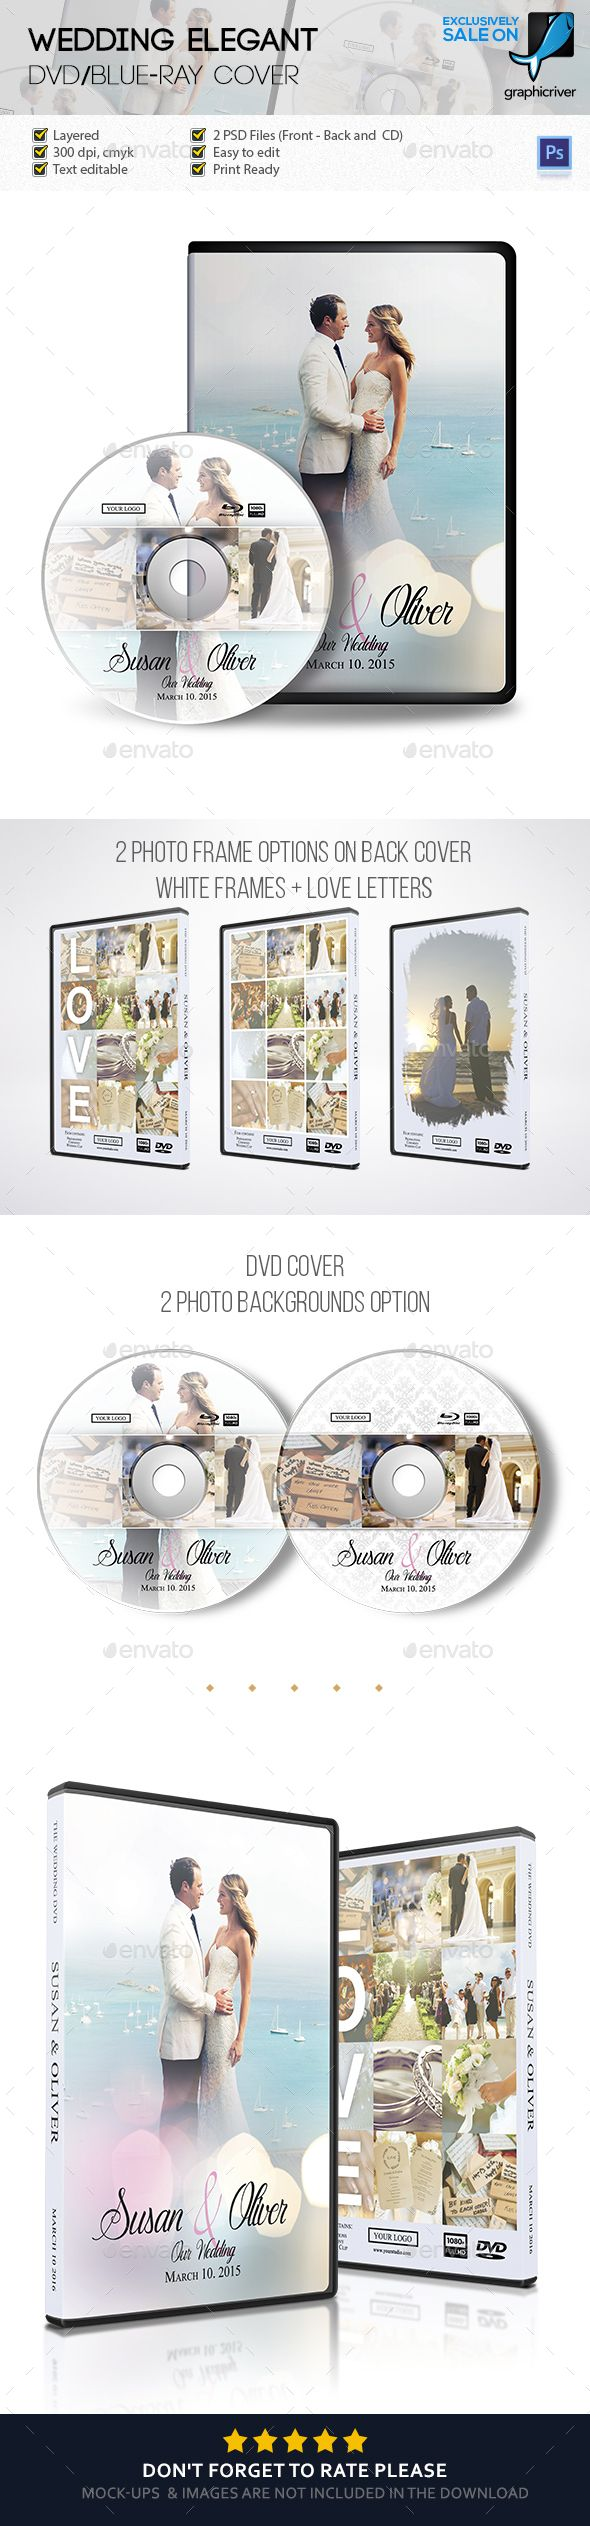 Wedding Elegant DVD Case Cover